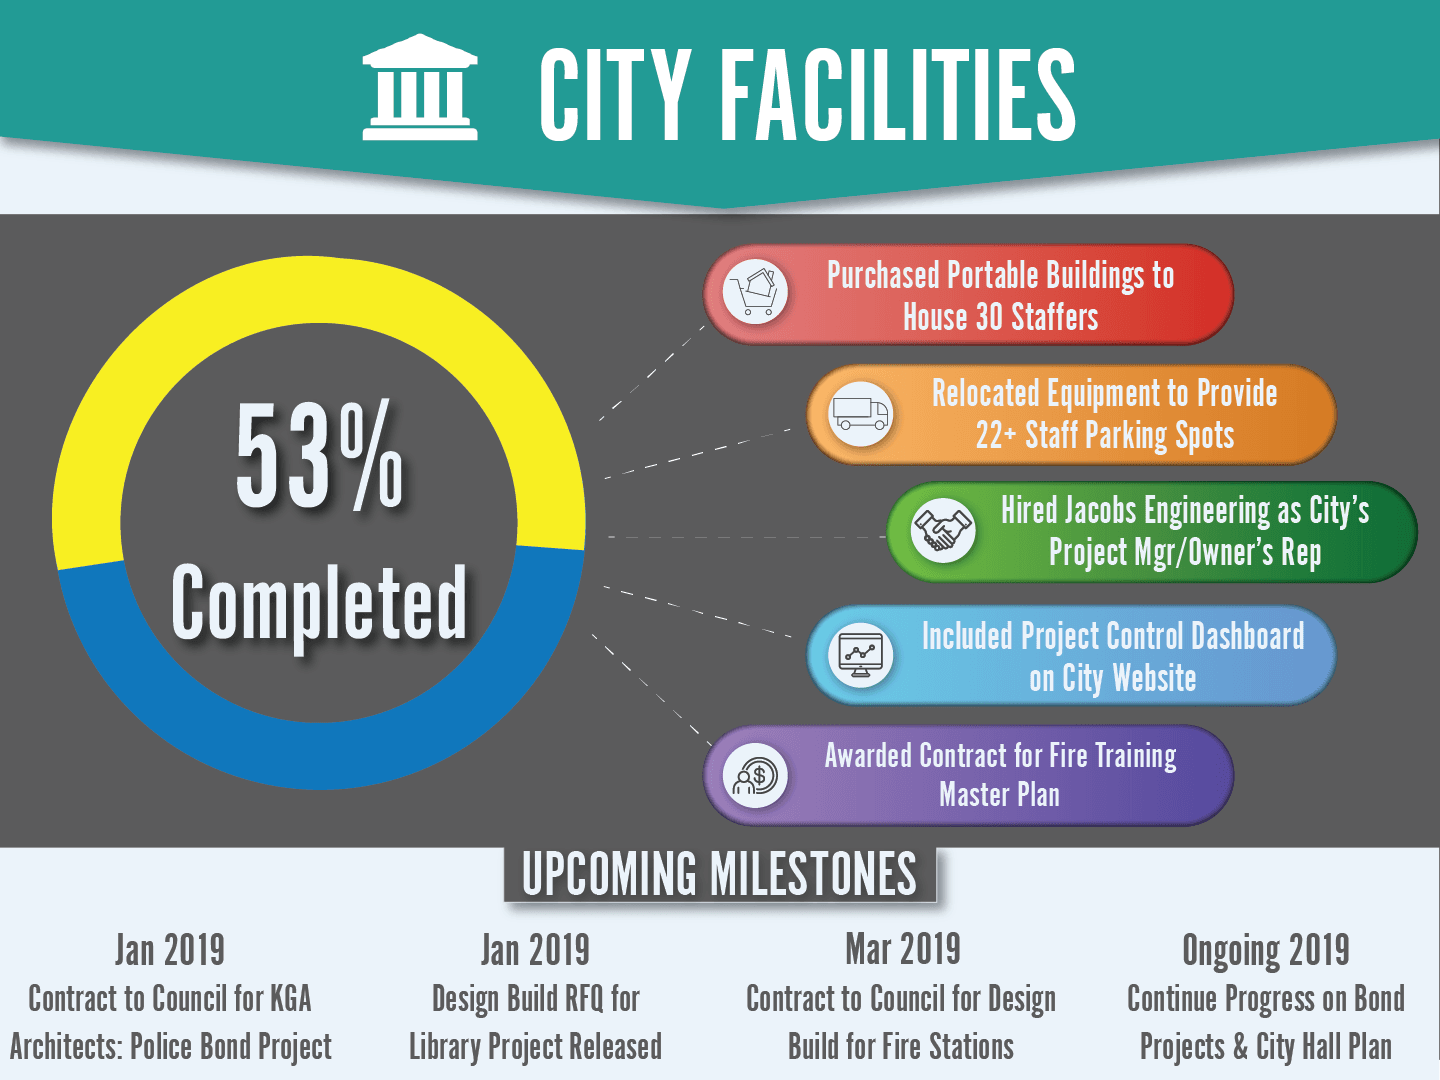 City Facilities Dashboard showing a 53% Completion Rate